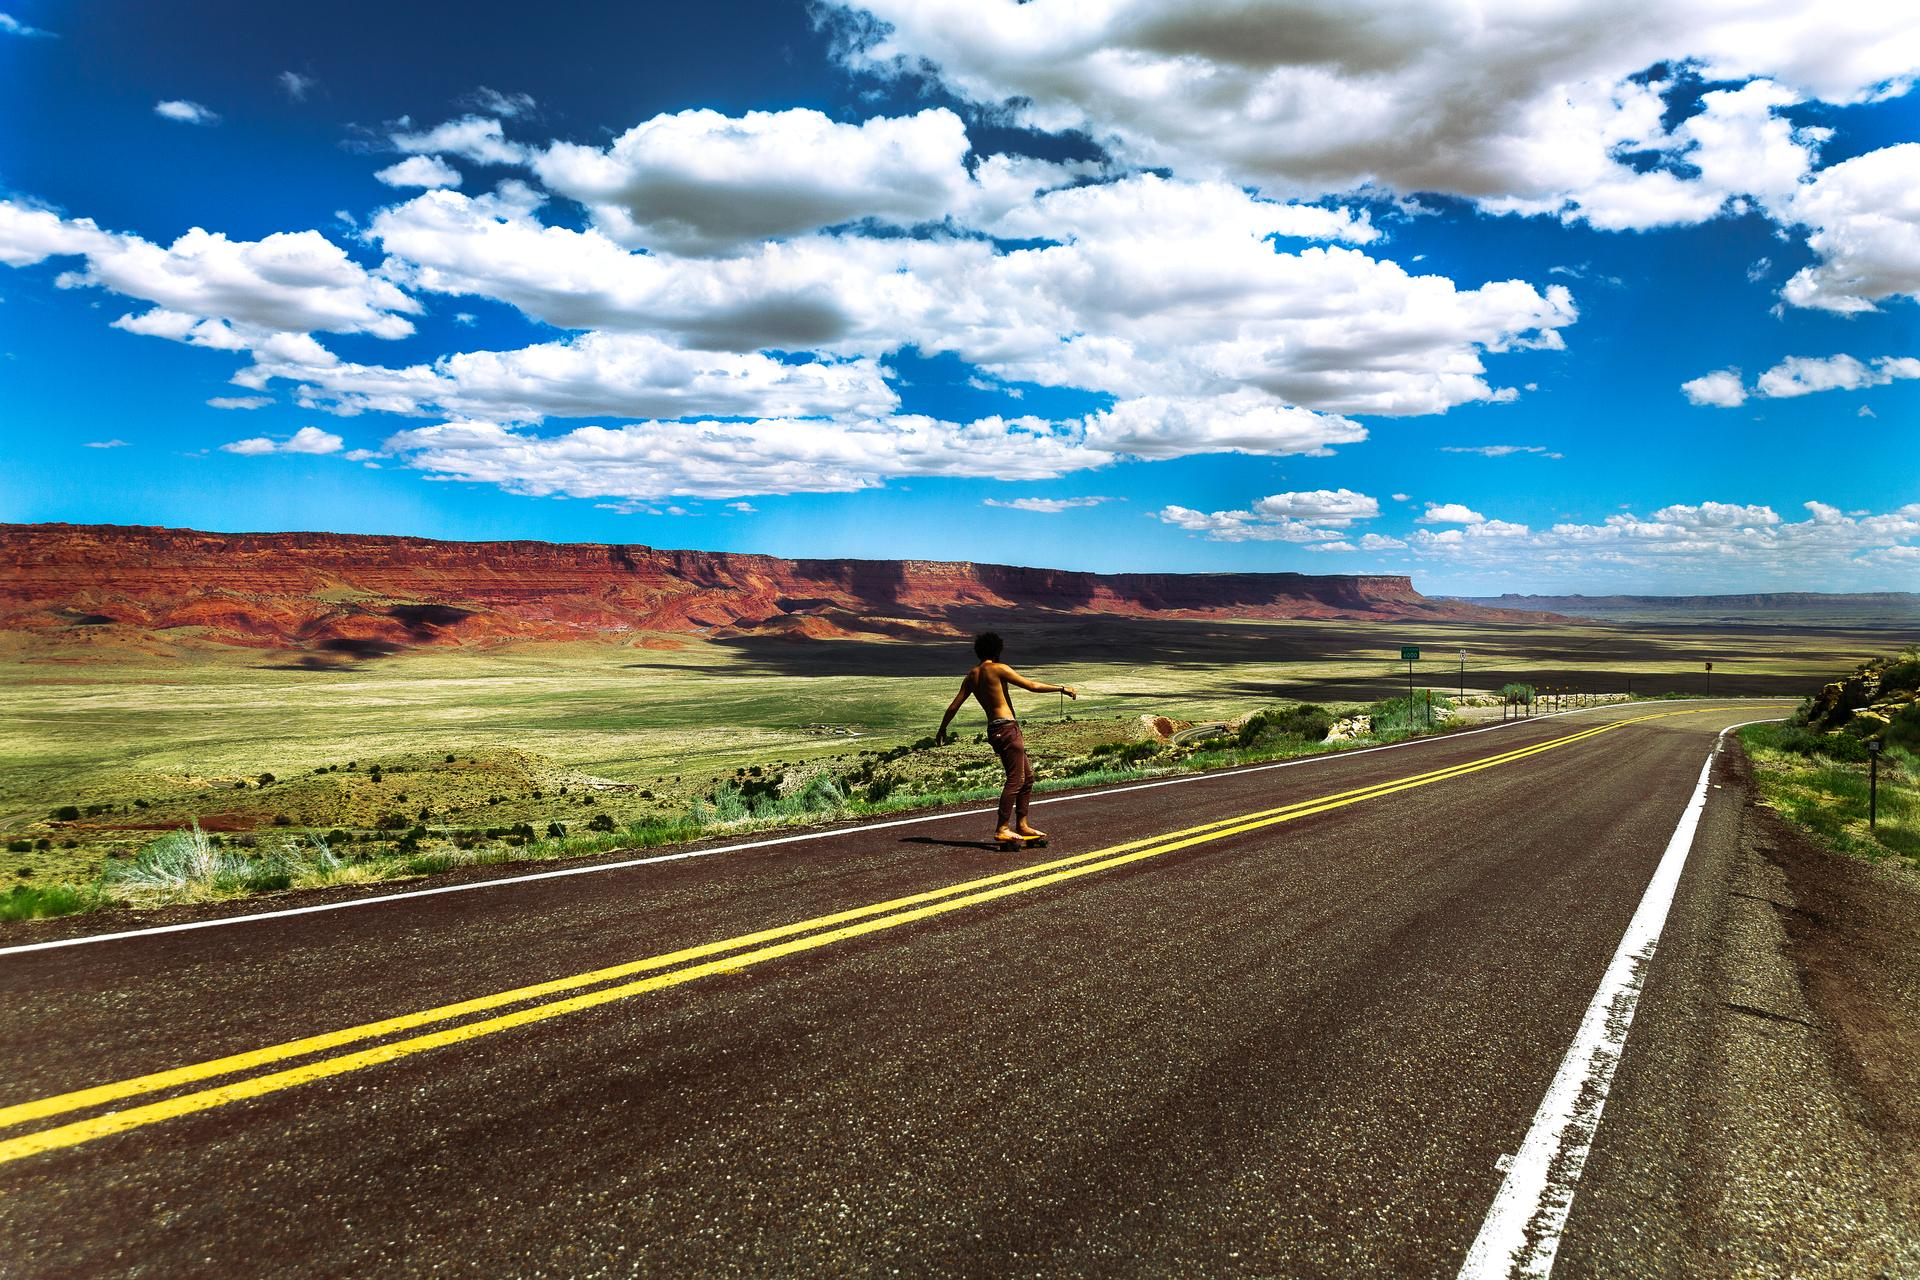 Life-of-Pix-free-stock-photos-arizona-skatboard-road-sidiomaralami.jpg